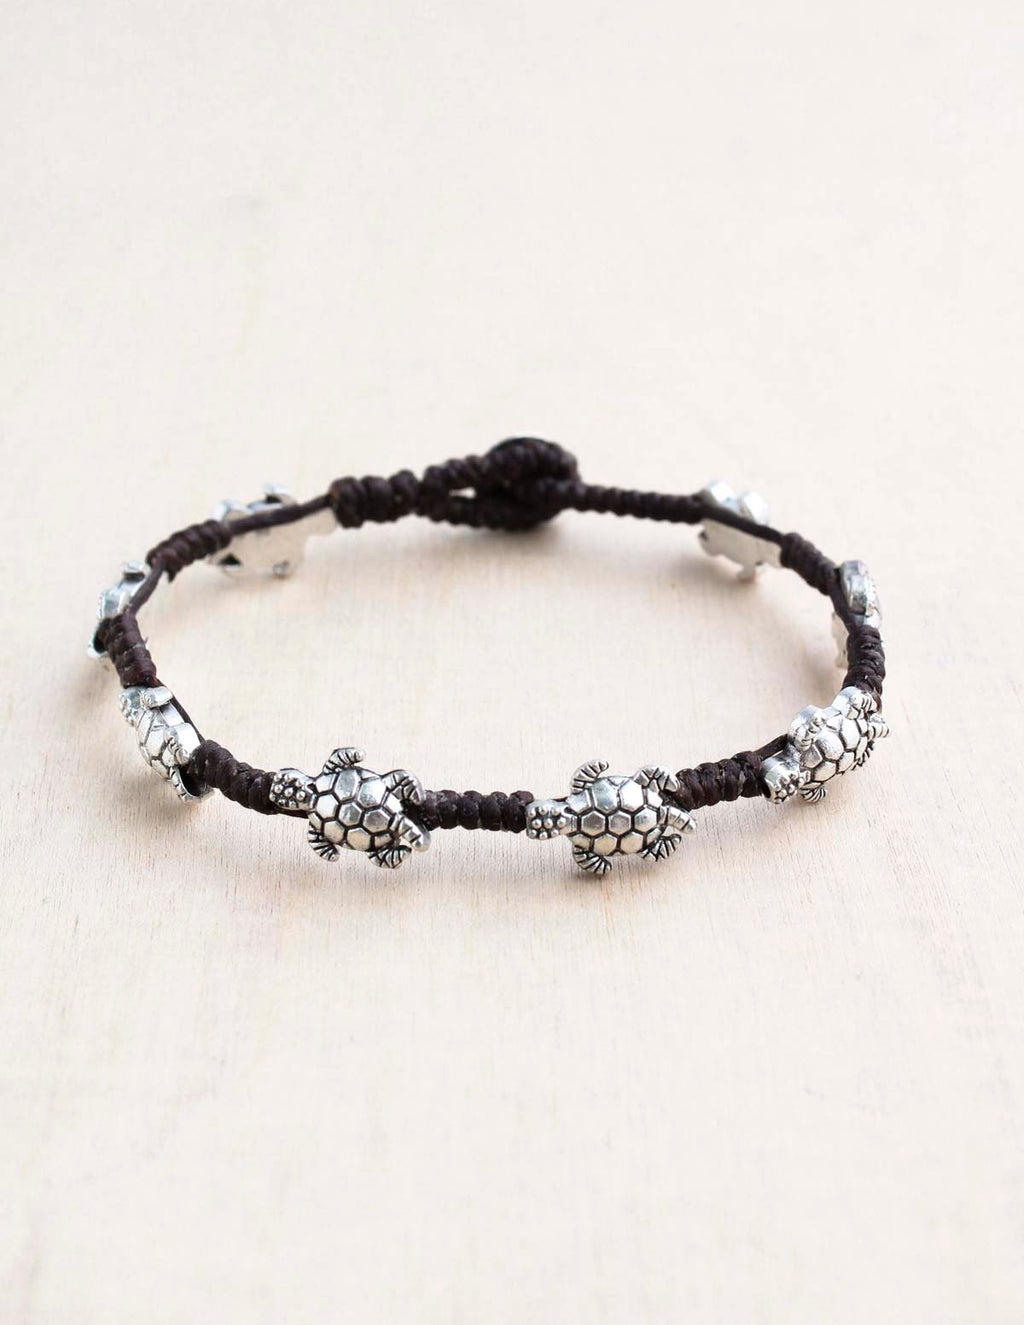 alloy, bali queen, coco rose, silver, rhodium, hypoallergenic, tribal jewelry, single strand, turtle, turtle bracelet